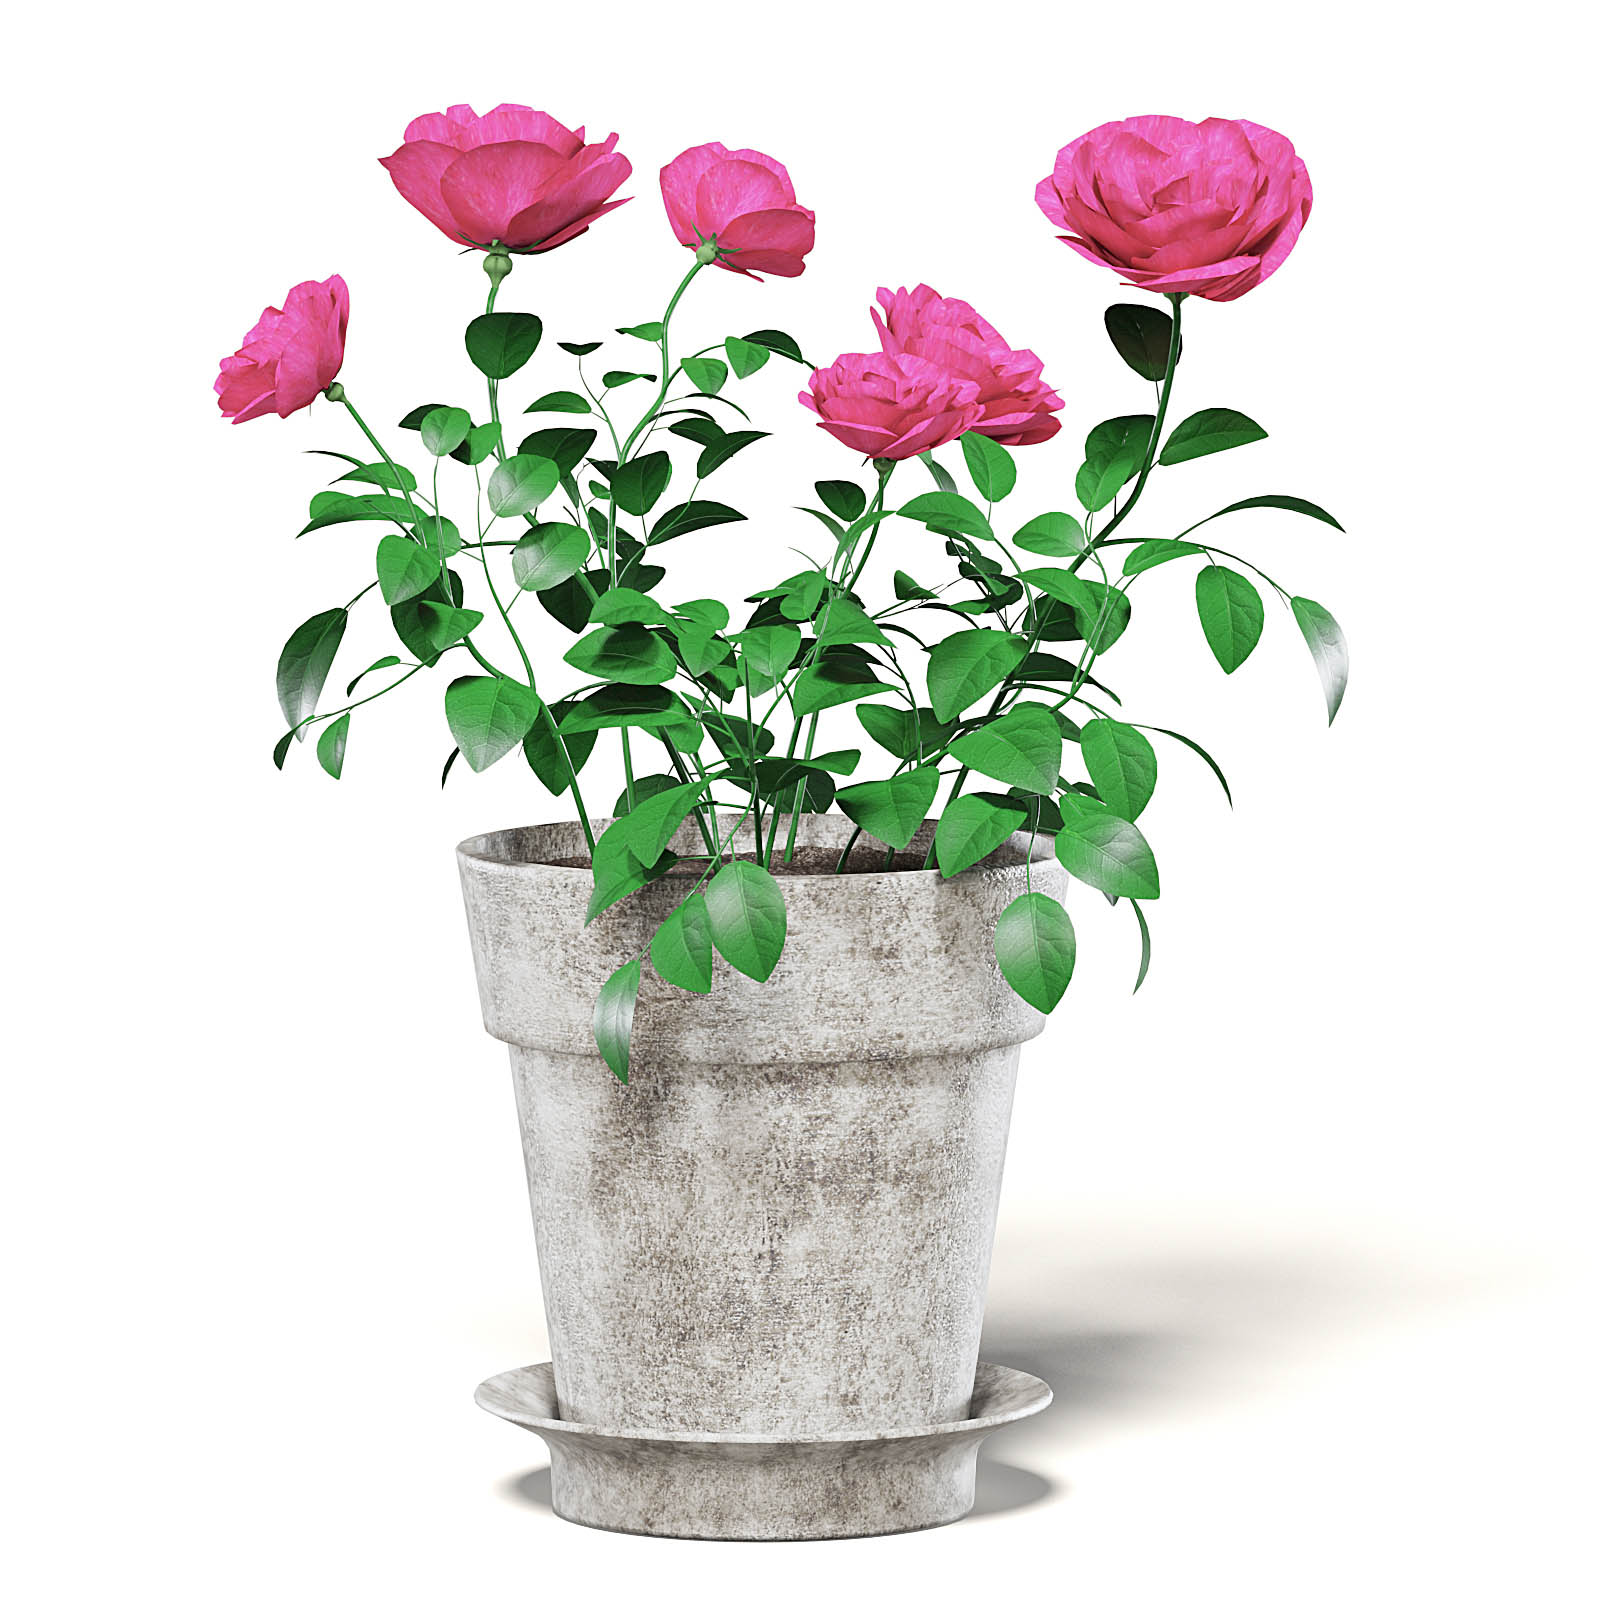 Pink Roses Model In Ceramic Pot